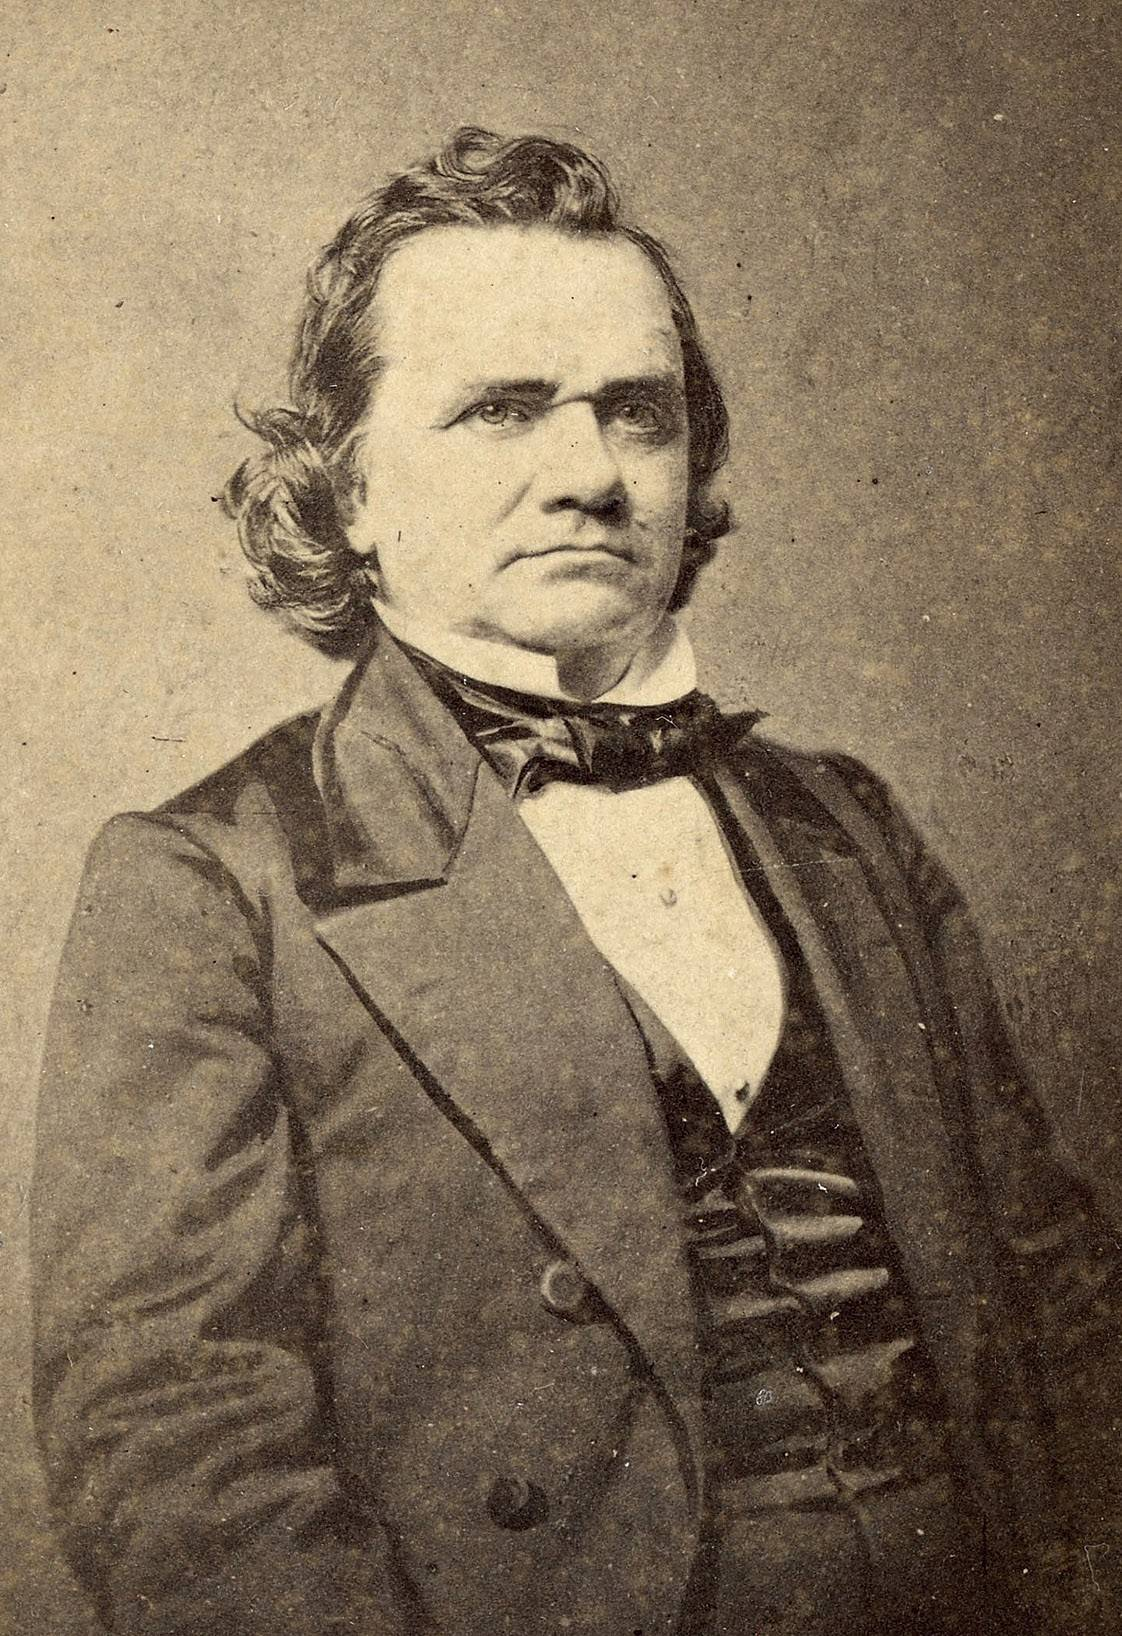 Stephen A. Douglas in the 1850s, when he was a U.S. senator from Illinois.